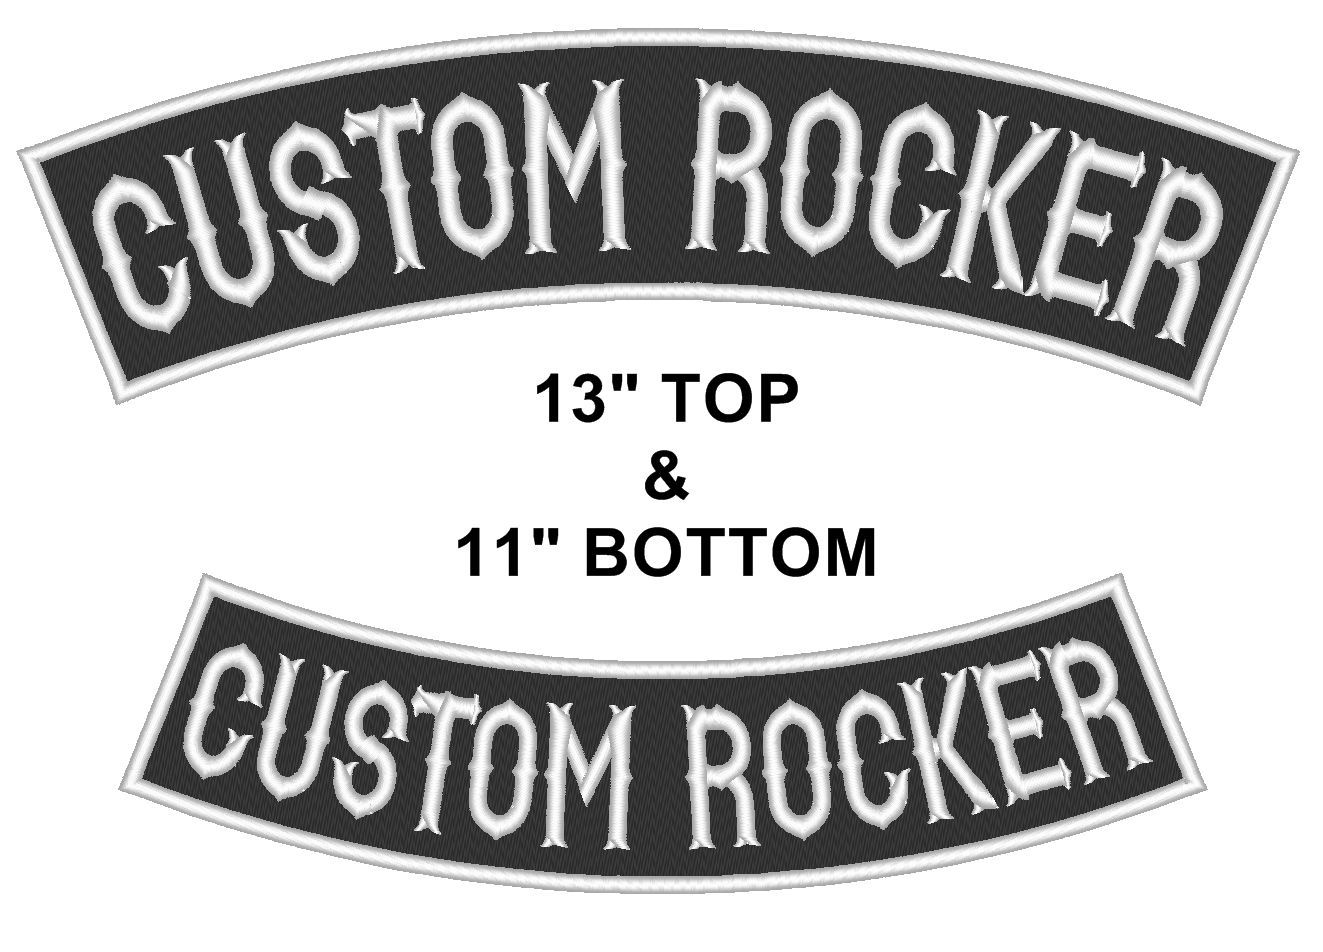 "Custom Embroidered 13"" Top & 11"" Bottom Rocker Biker Sew on Patch (B-1)"